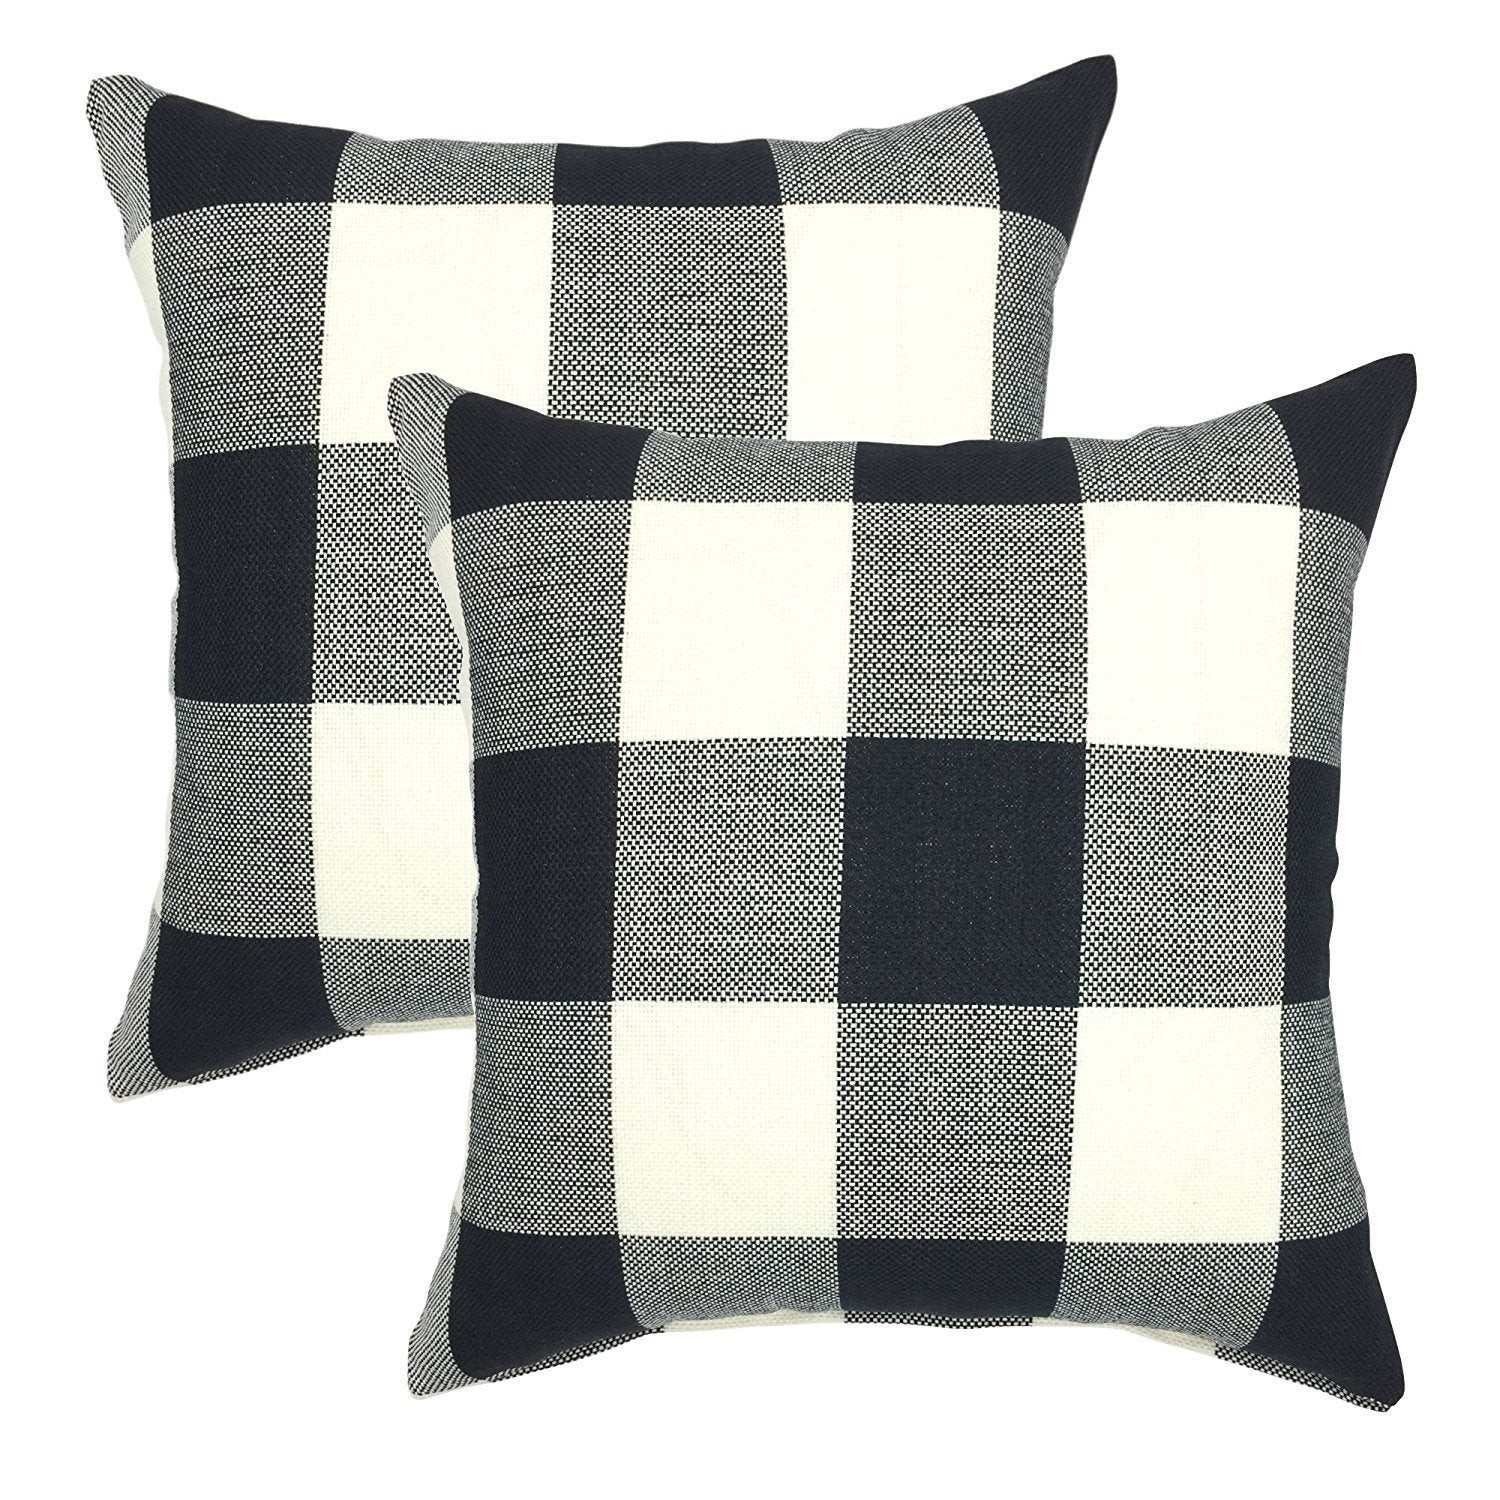 Buffalo Check 18 Inch Decorative Throw Pillow Cover Set Of 2 Overstock 19848778